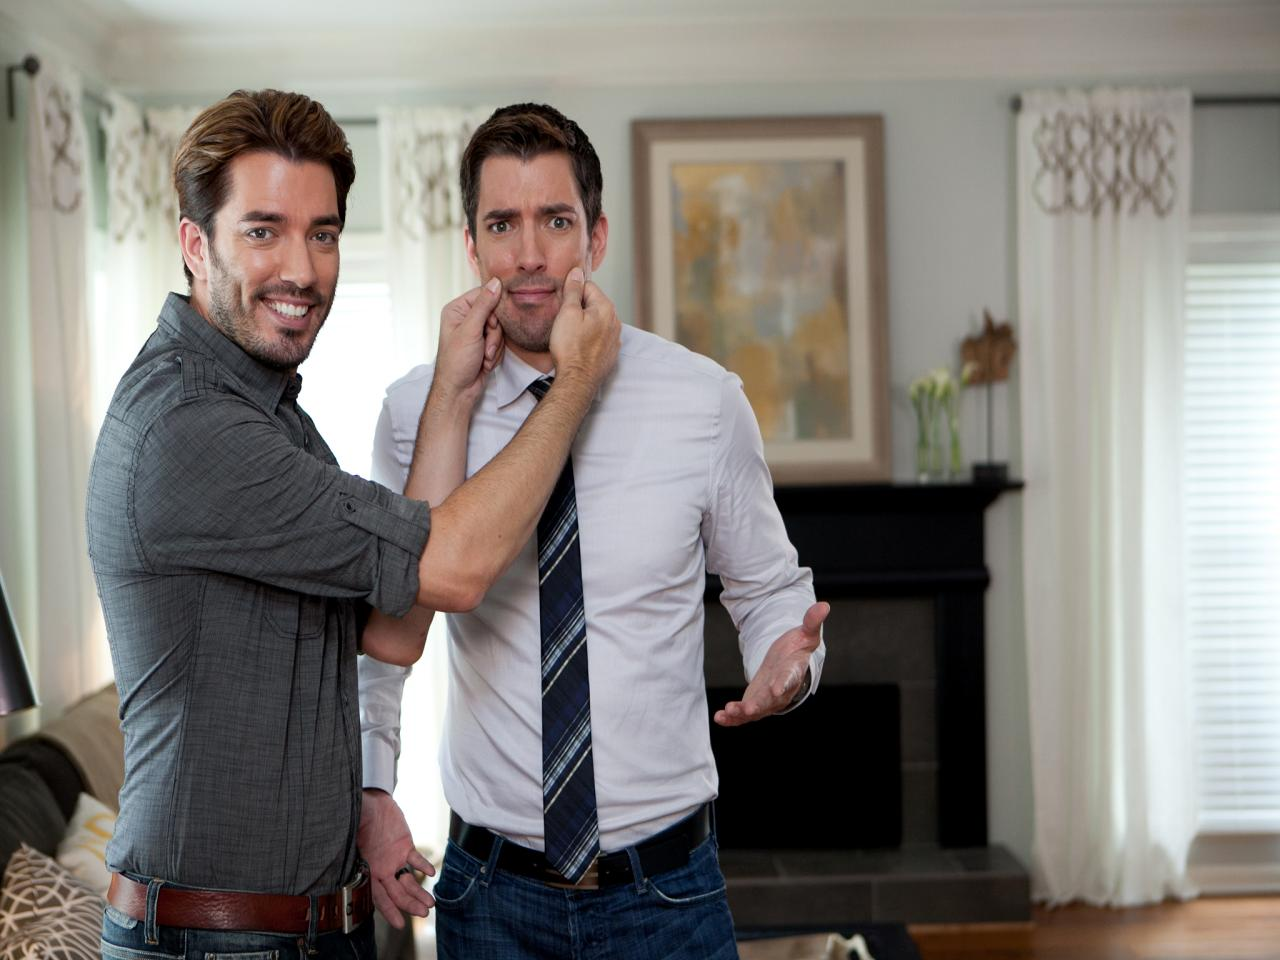 Hgtv 39 s property brothers bring the fun to home reno Who are the property brothers